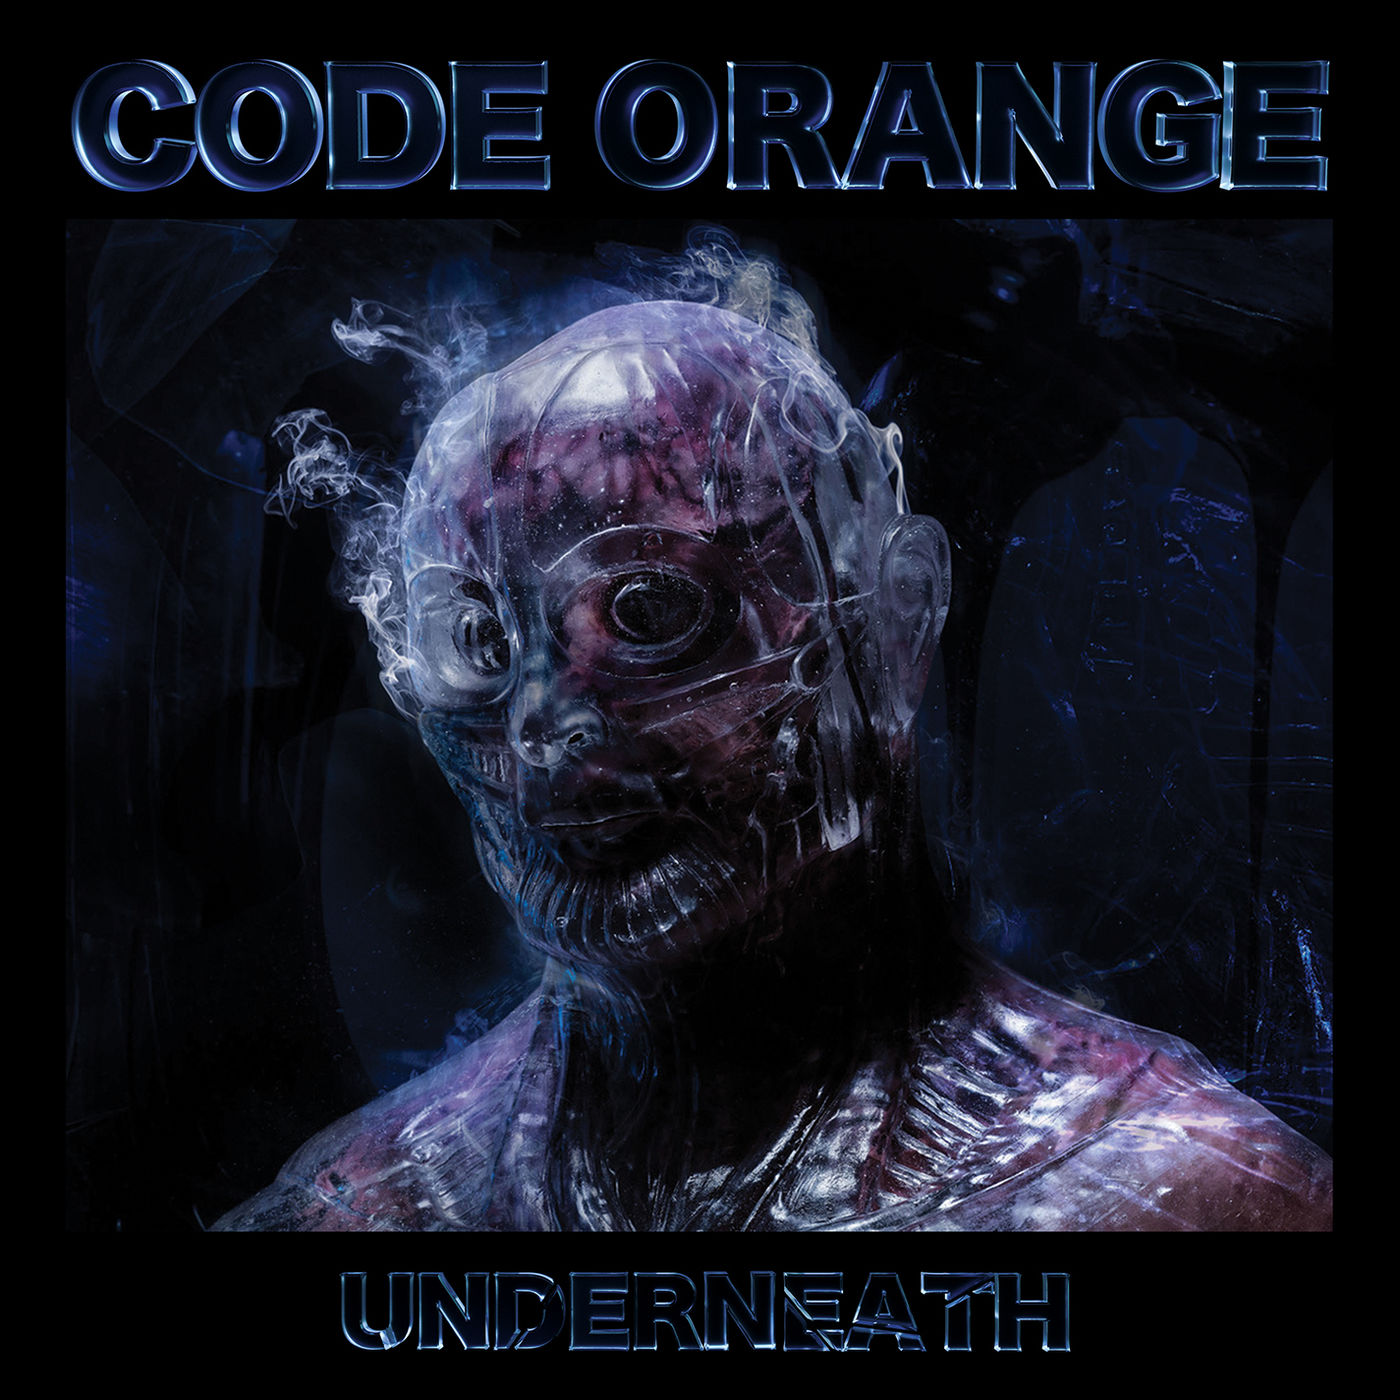 Code Orange - Swallowing the Rabbit Whole [single] (2020)